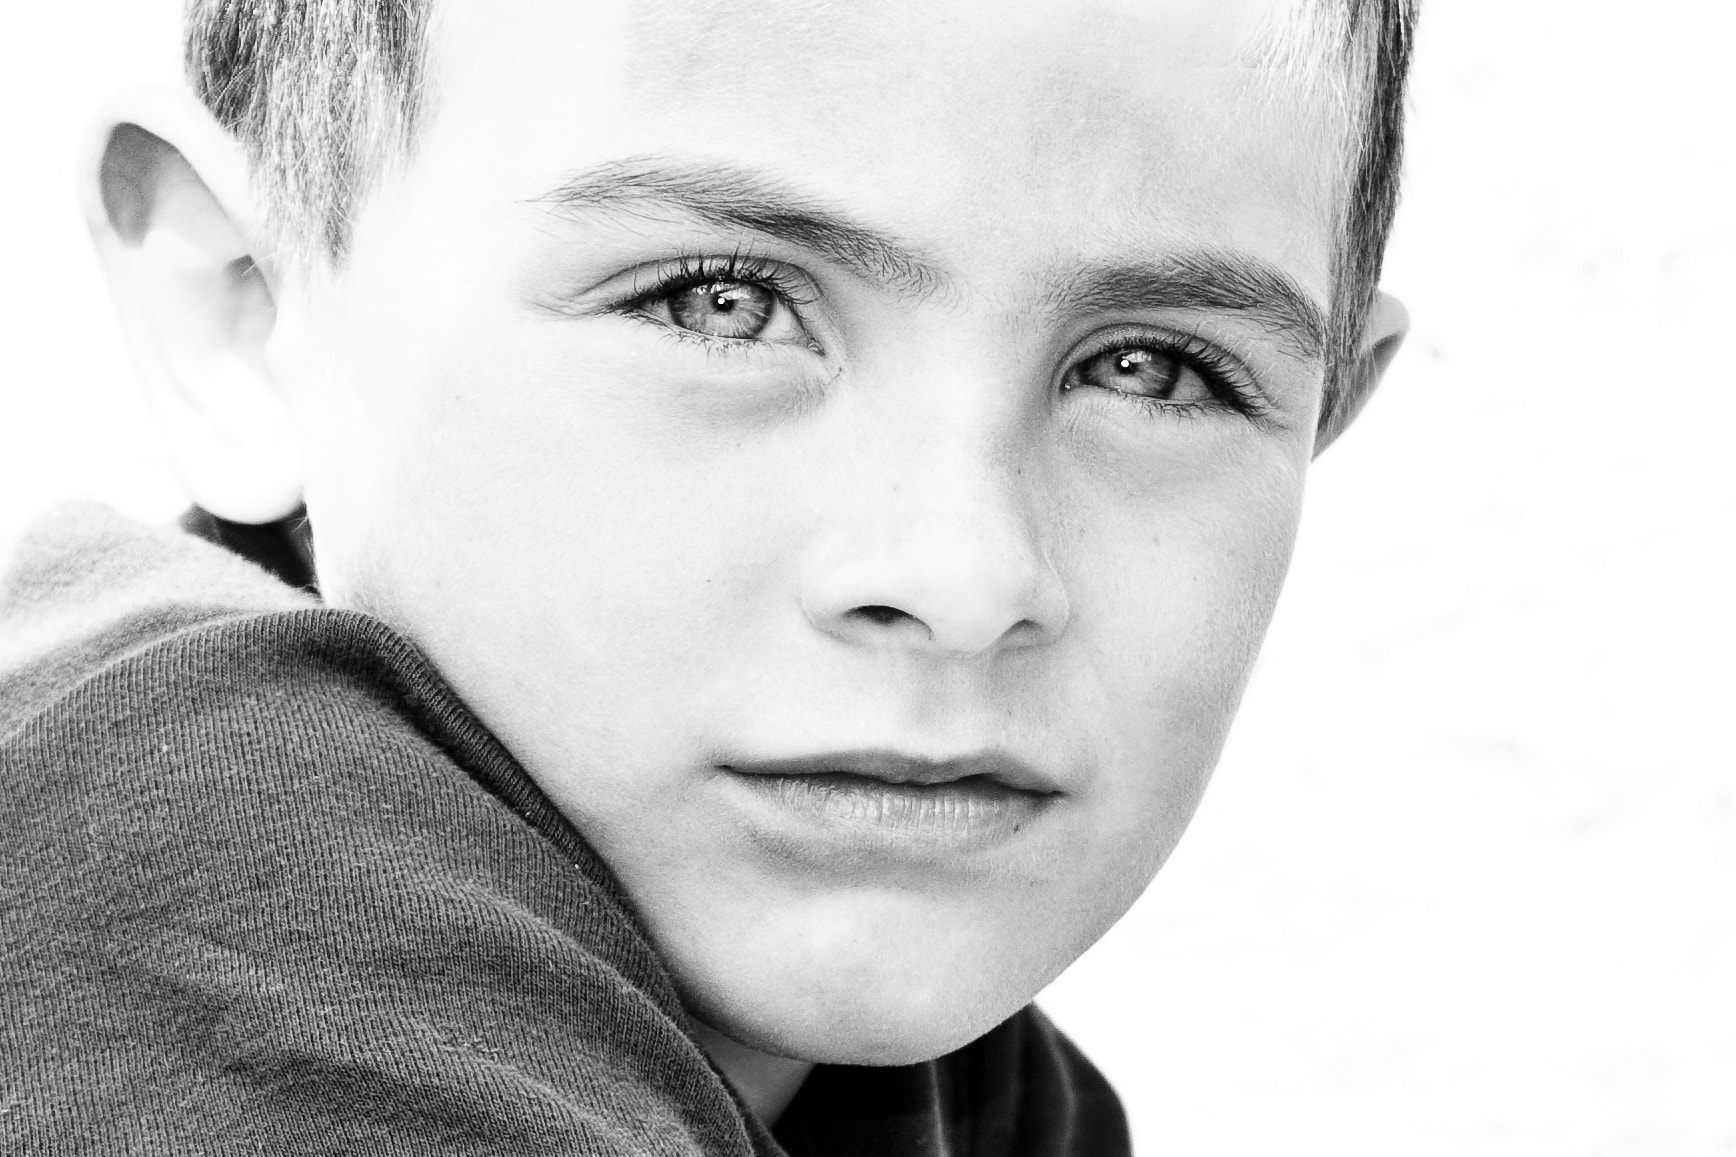 Photograph In his eyes by davide spedicato on 500px